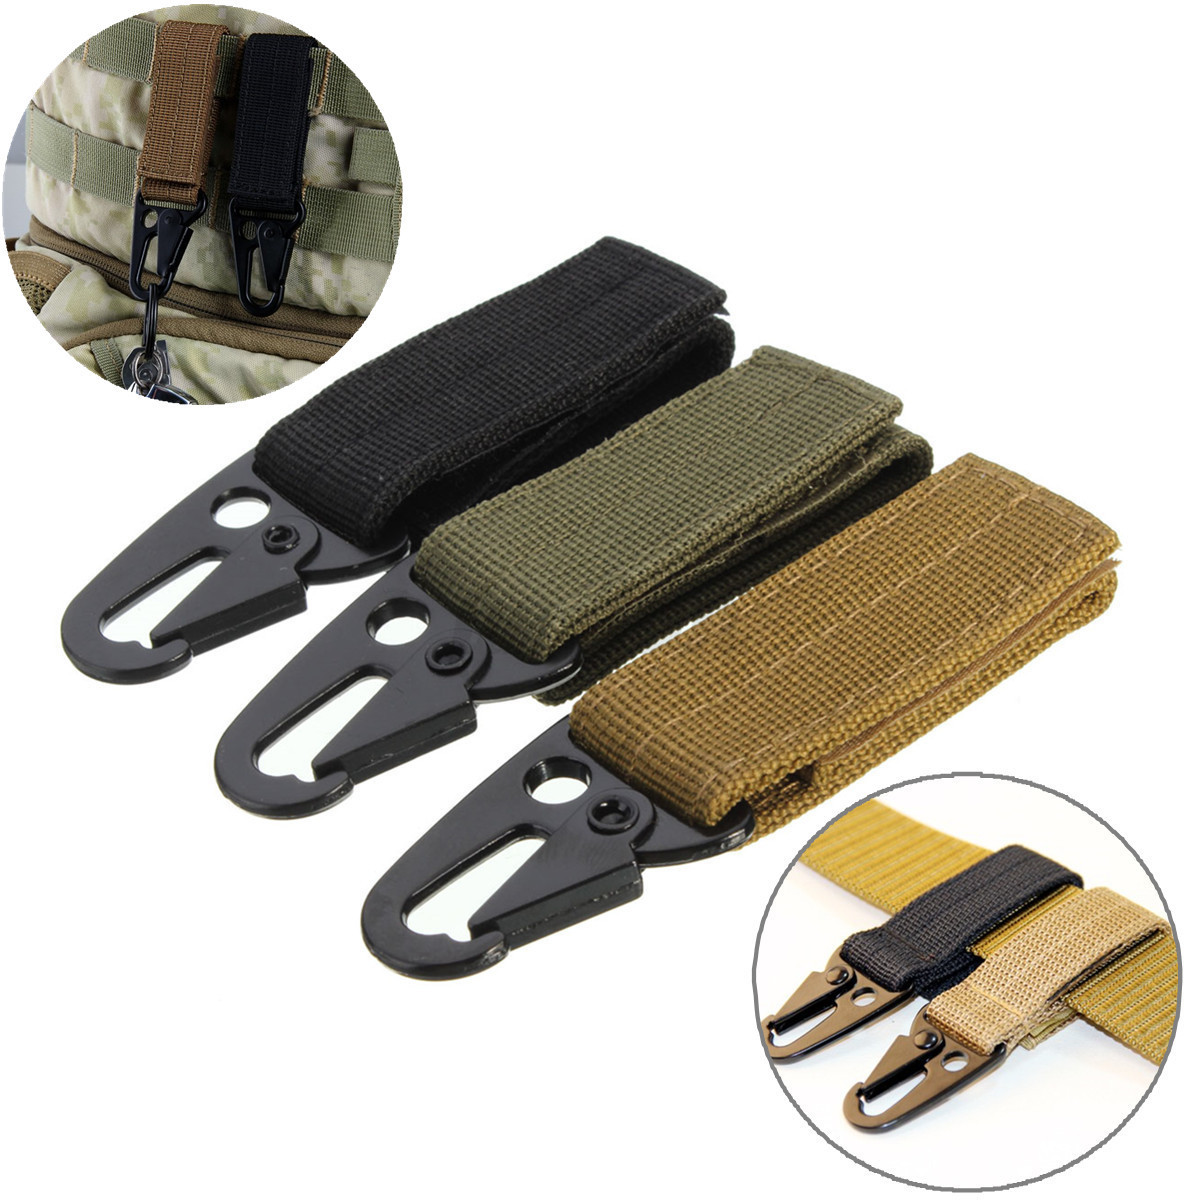 Мужской брелок Nylon Outdoor Tactical Belt Carabiner Key Holder Bag Hook Web Buckle Strap Clip - 311460187909 - (США)